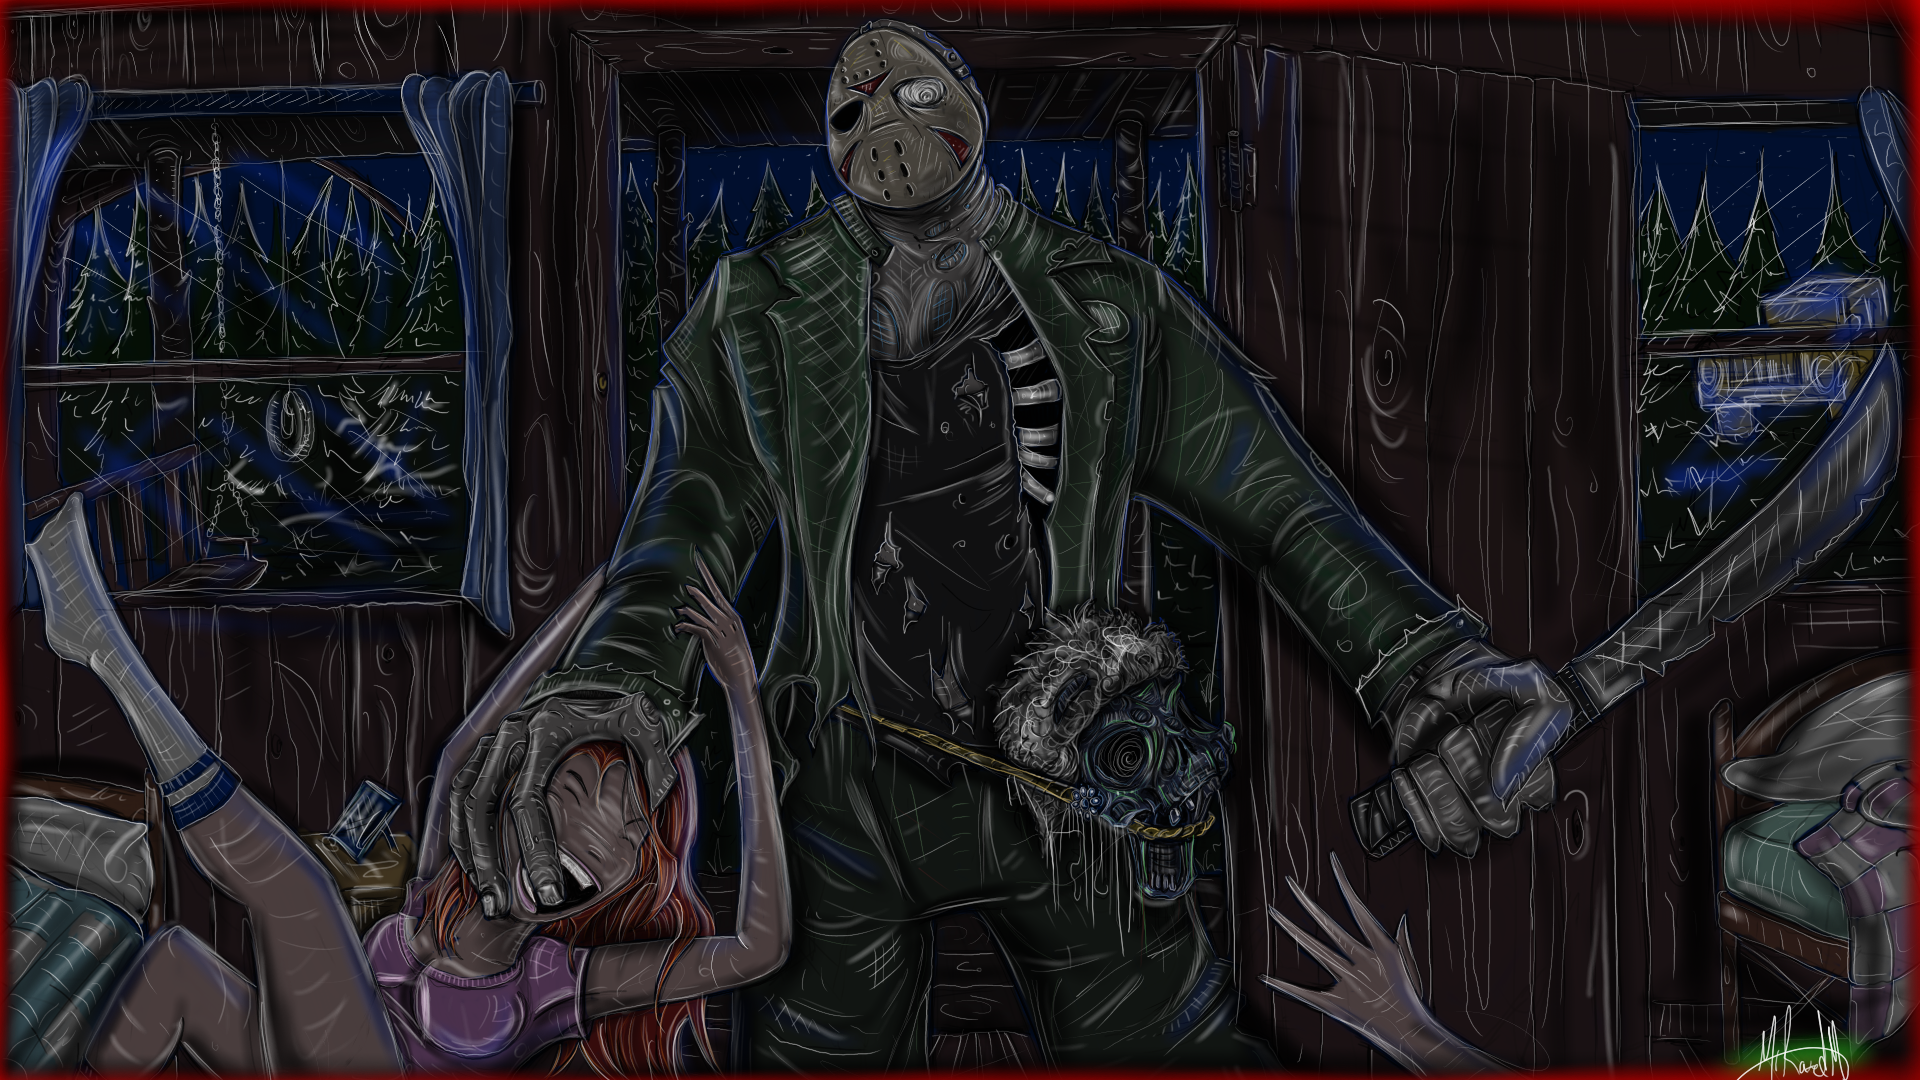 Friday The 13th Jason Voorhees By Yeahmanproductions On Deviantart